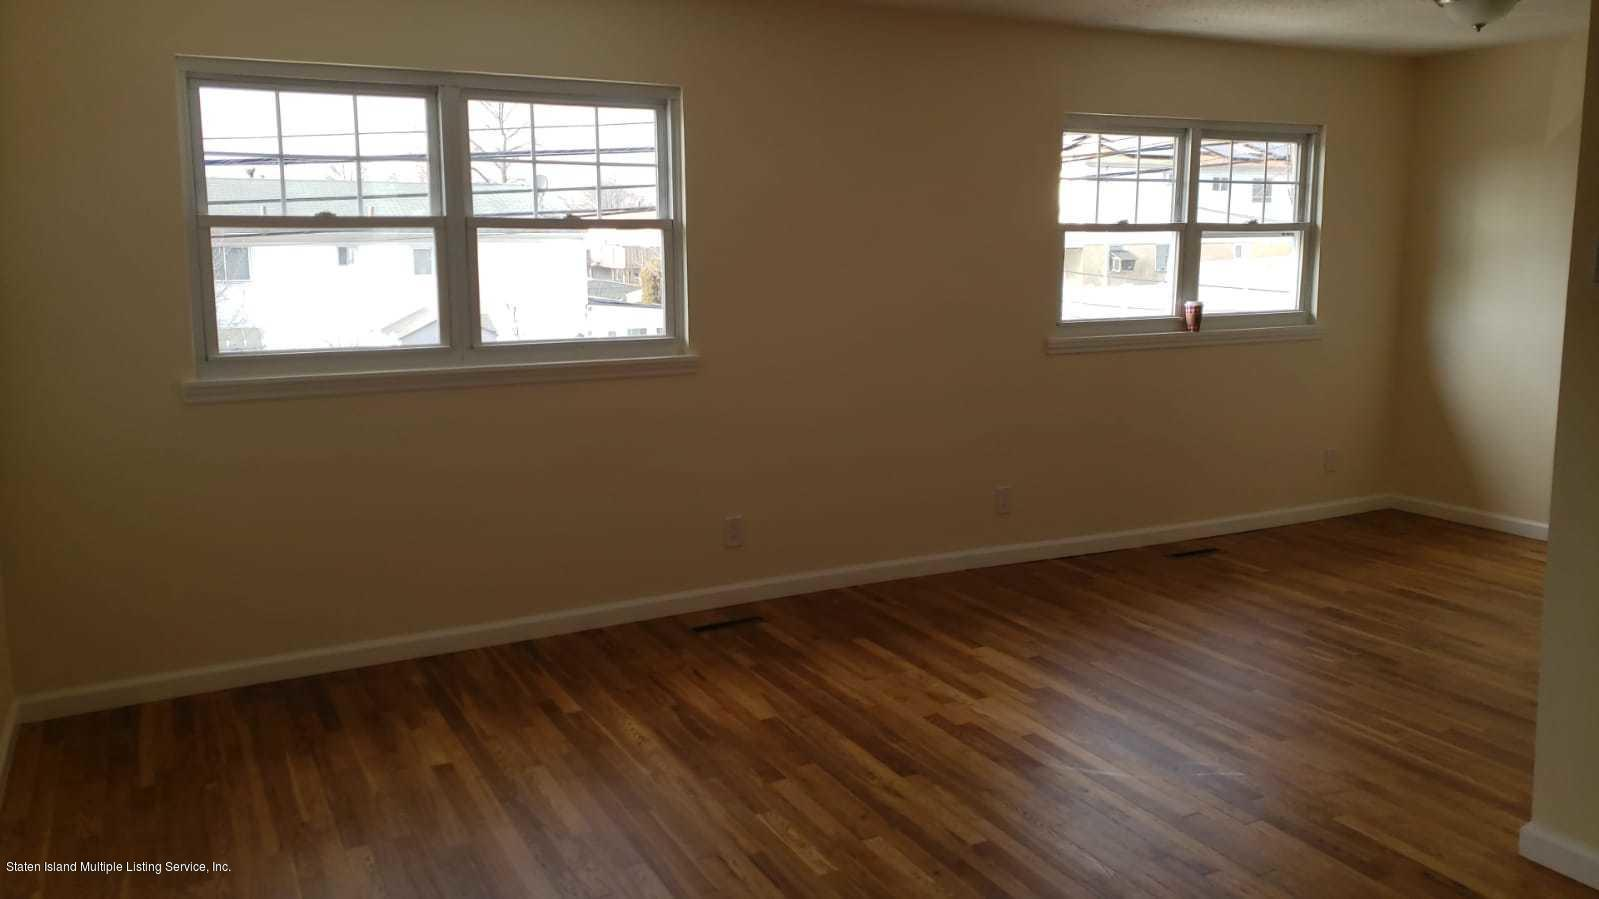 Single Family - Semi-Attached 505 Foster Road  Staten Island, NY 10309, MLS-1124398-13